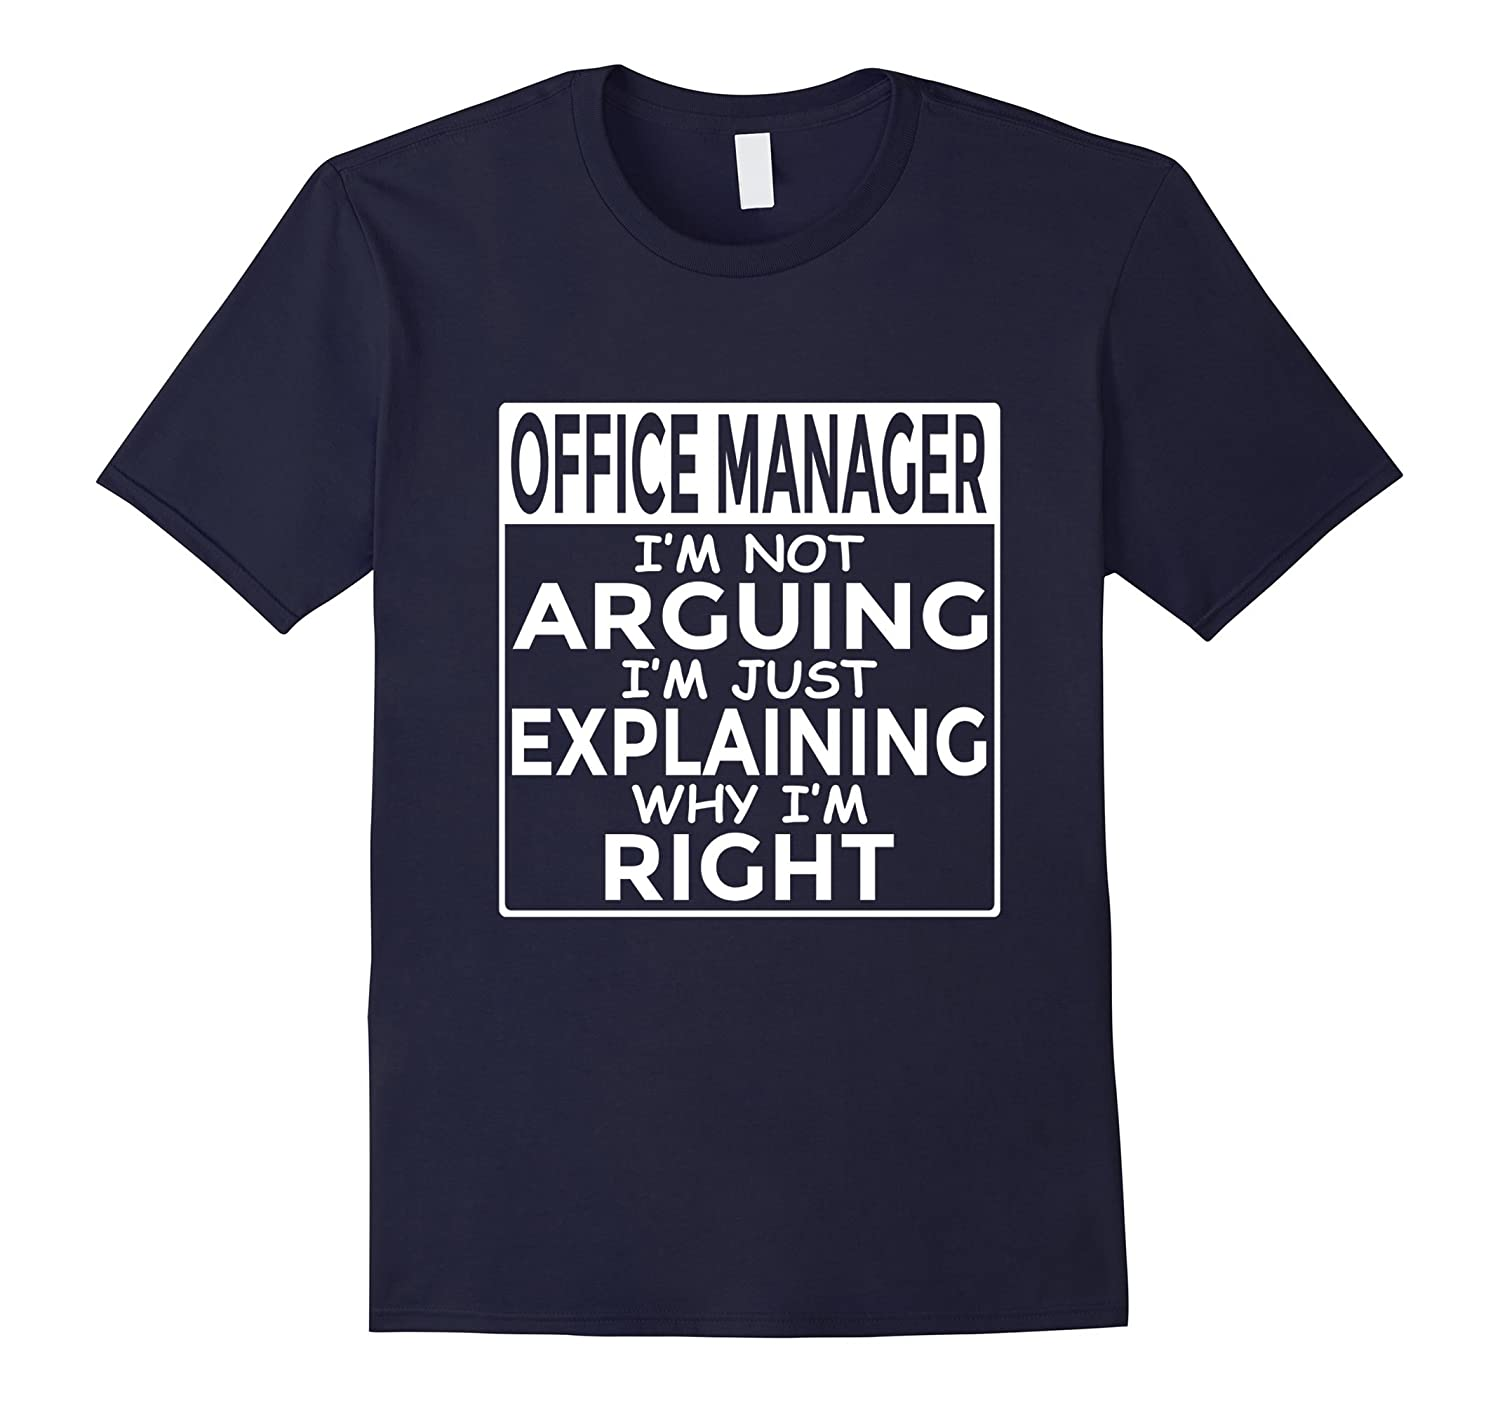 Office Manager I'm Not Arguing Just Explaining Why I'm Right-T-Shirt